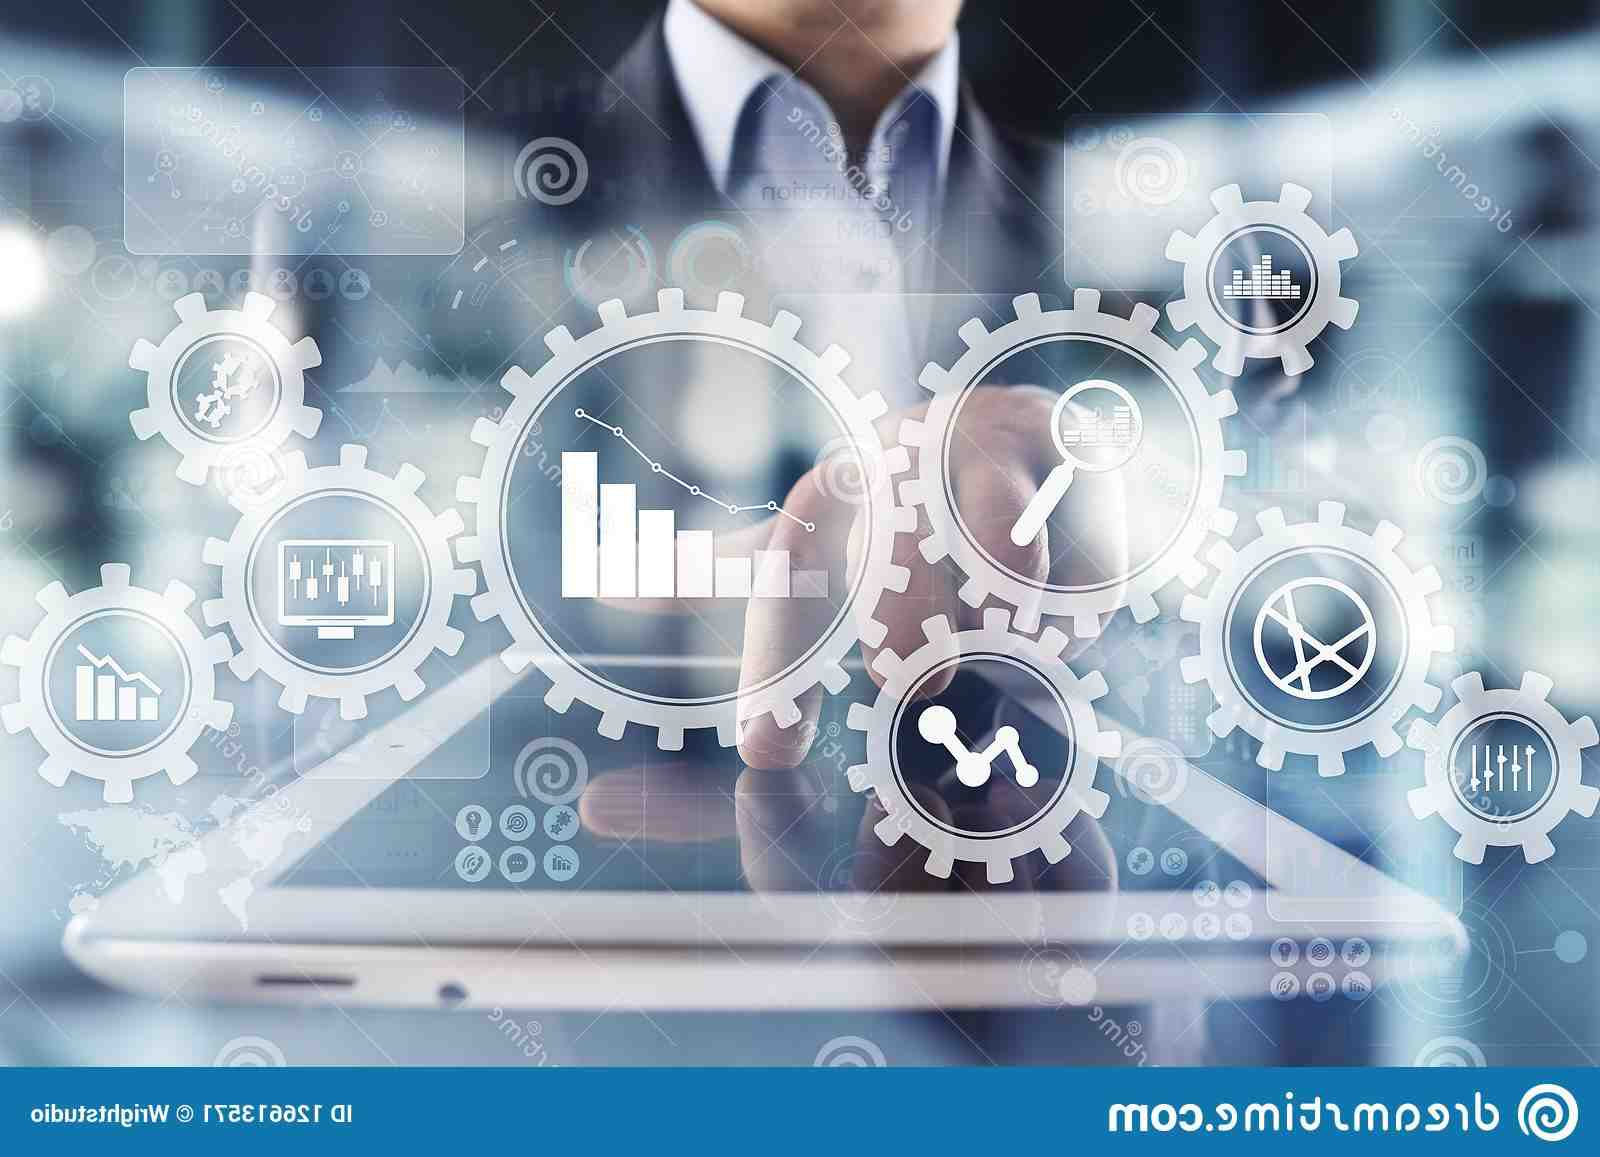 What is data analytics and business intelligence